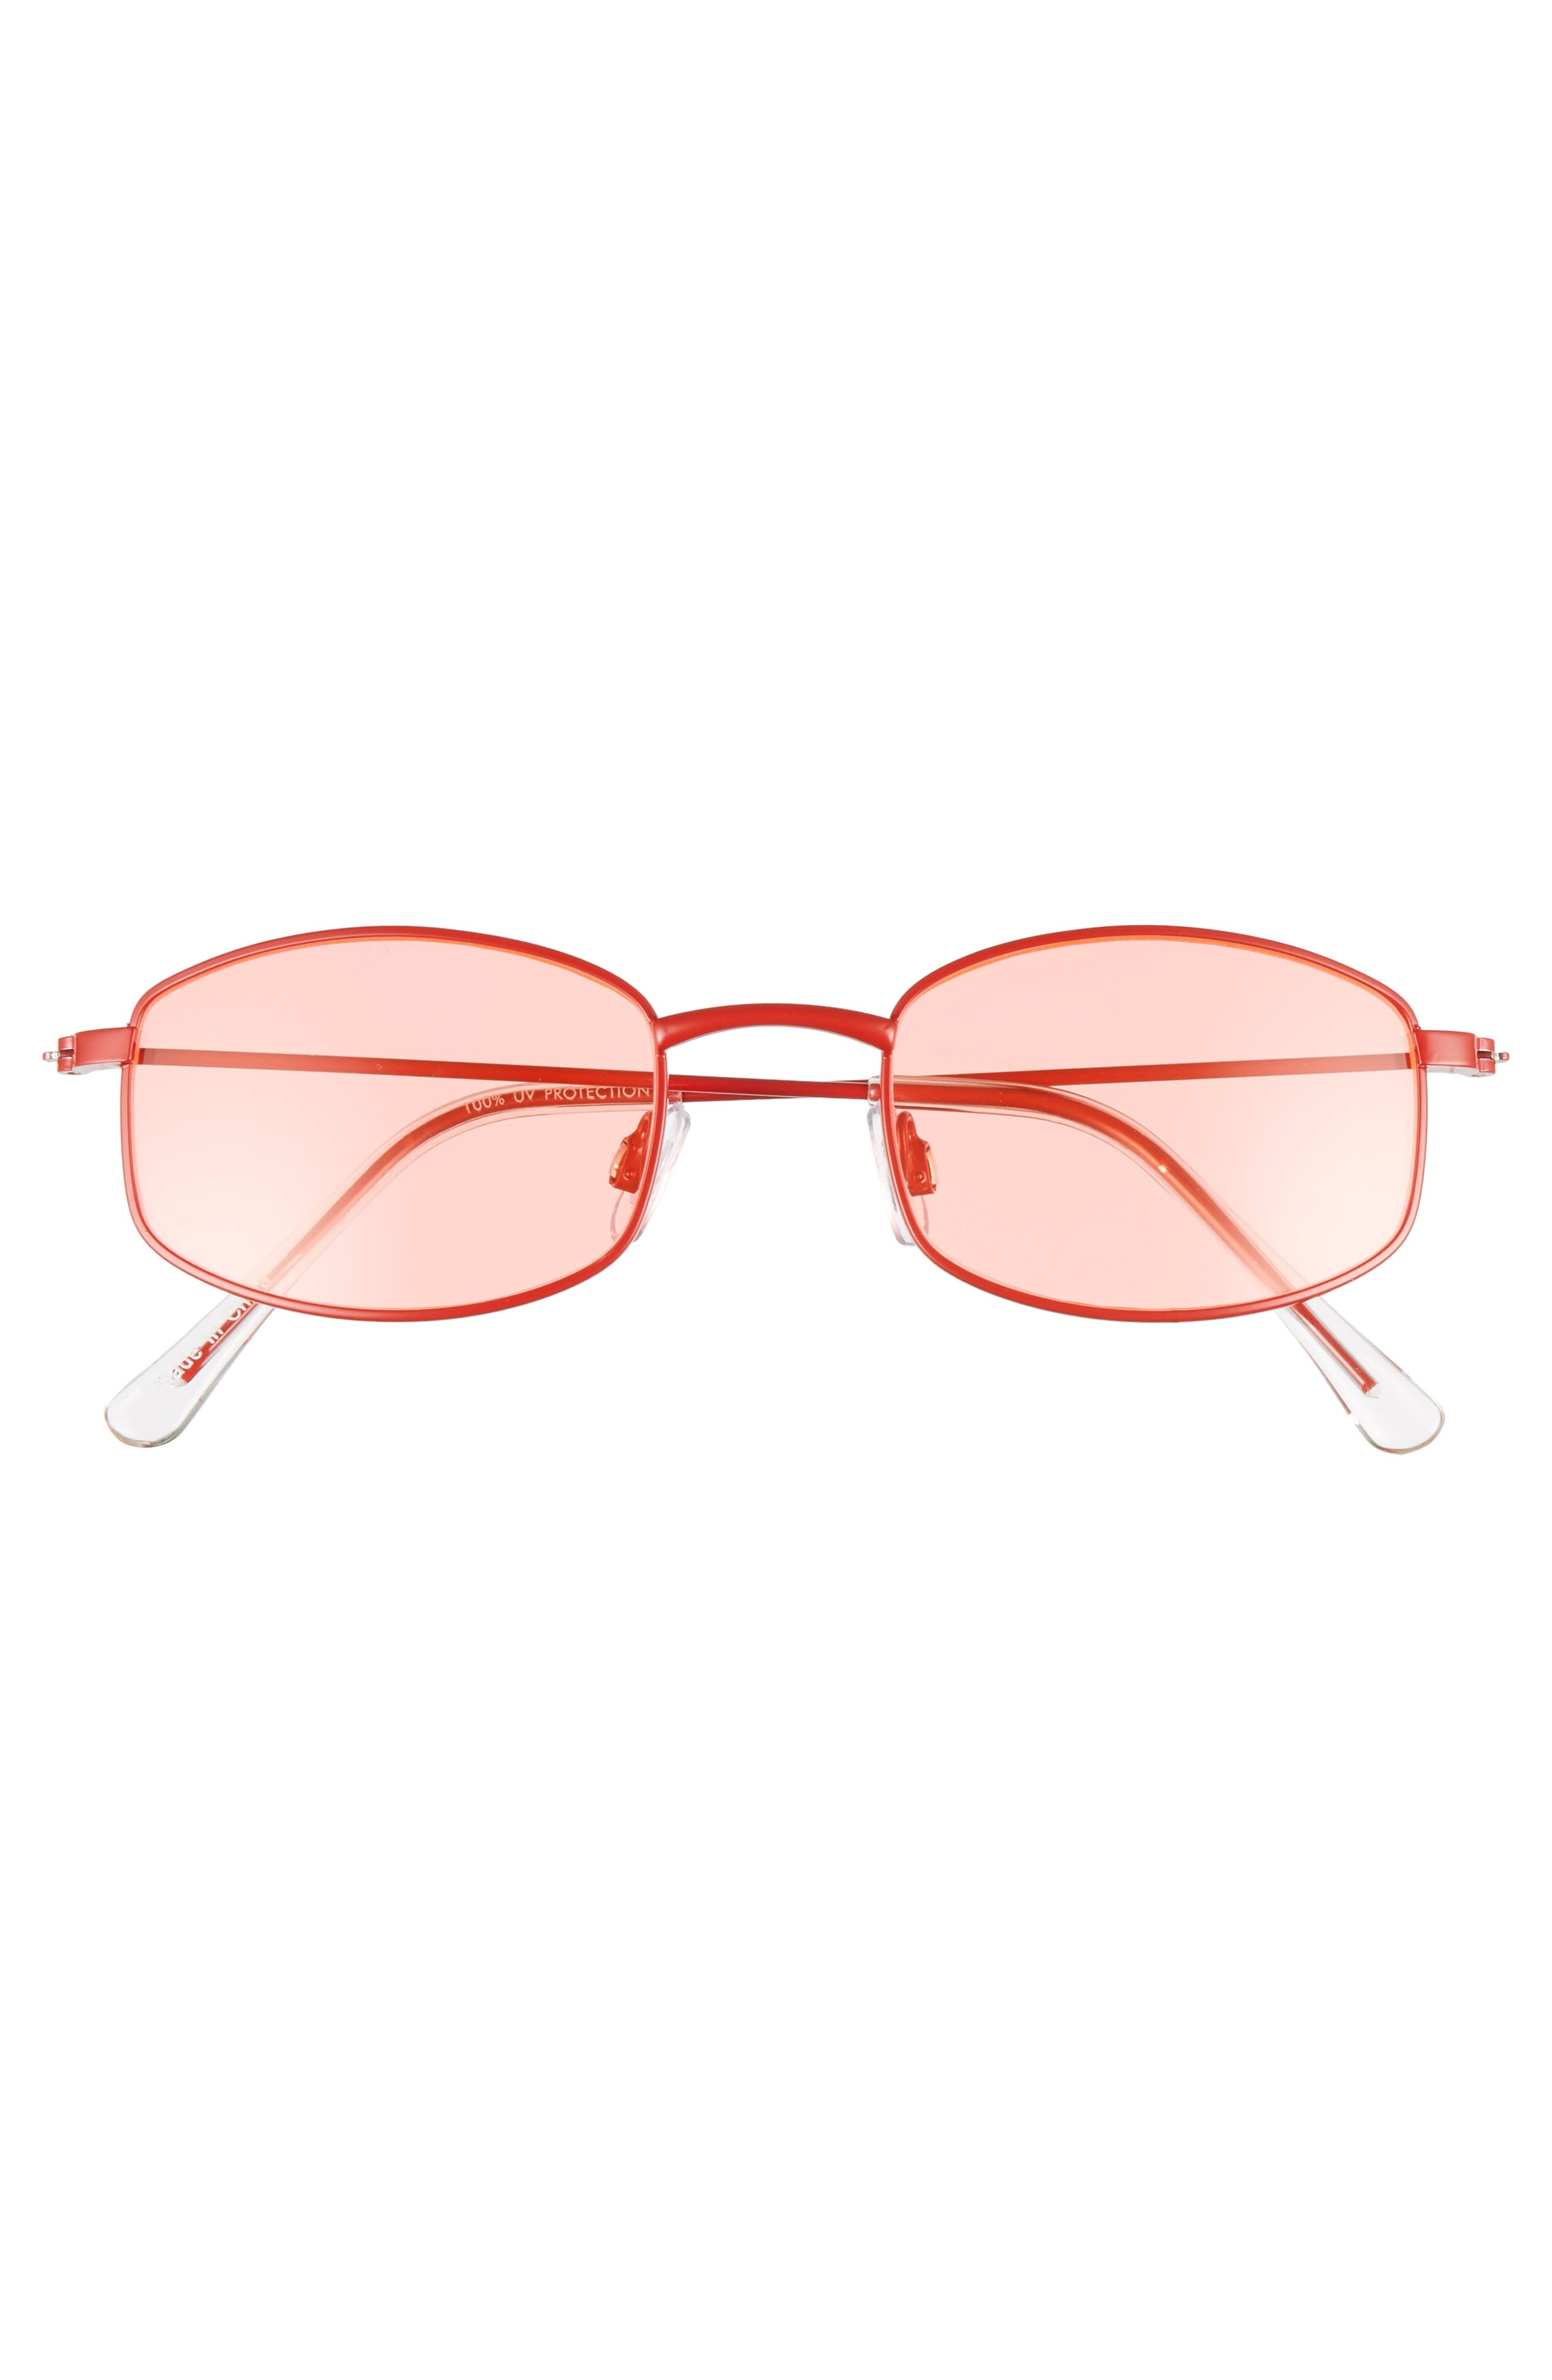 Mini 55mm Square Sunglasses,                             Alternate thumbnail 3, color,                             RED